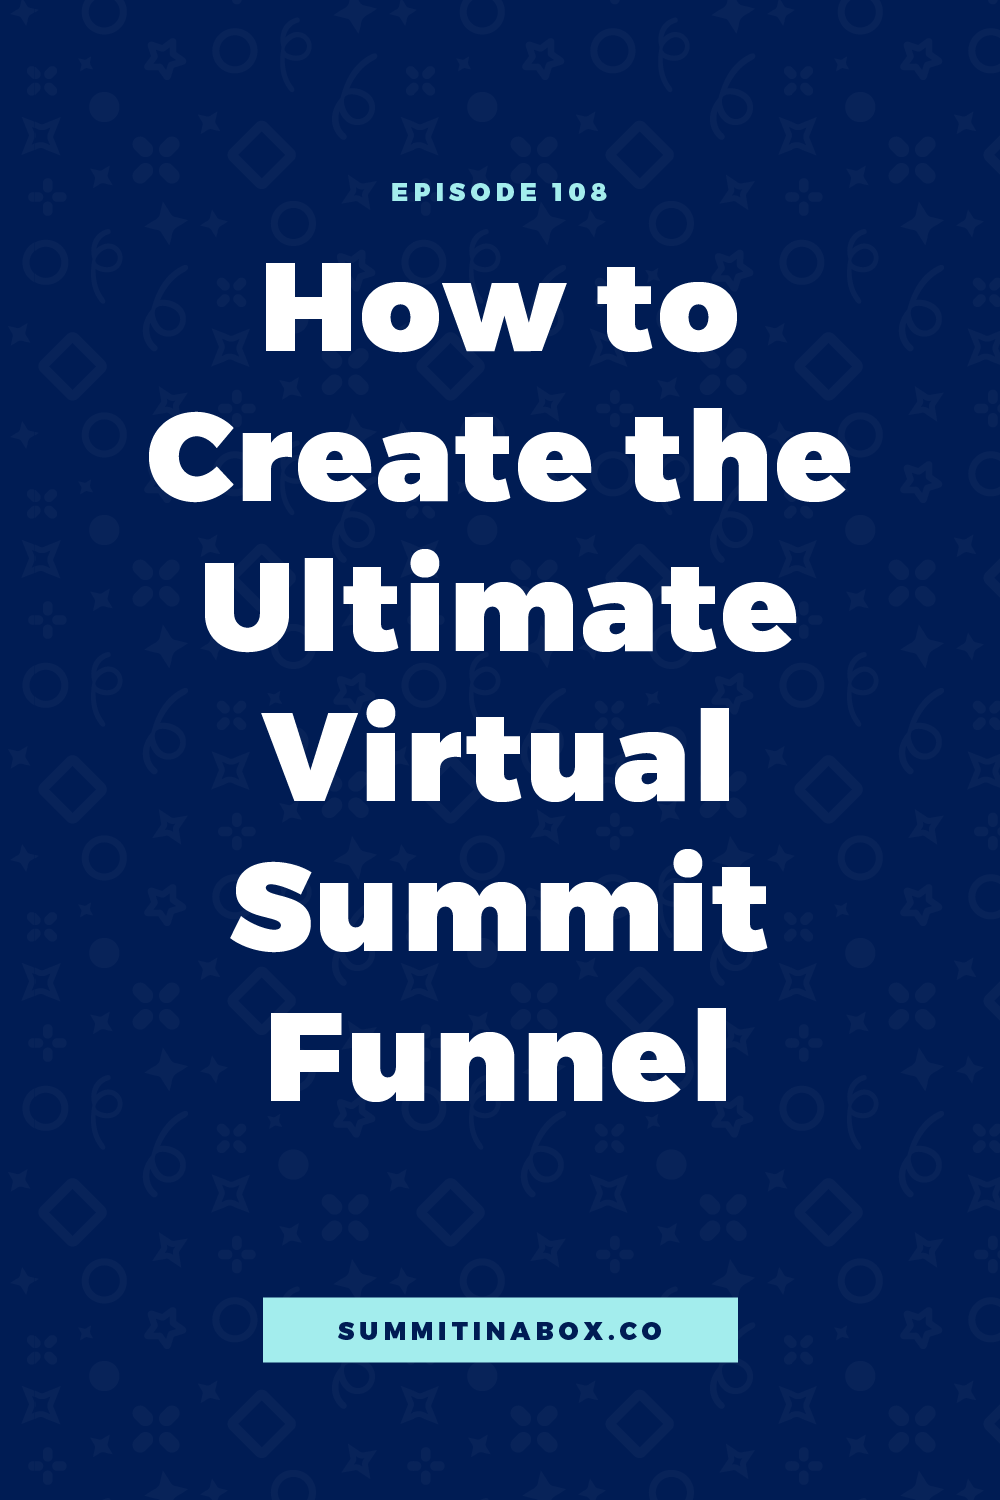 A virtual summit funnel has a lot of moving pieces, but if you're already running a business I know it's nothing you can't handle. The thing is, a lot of summit hosts don't even think about their overall funnel. So how do you create a profitable virtual summit funnel that converts? We'll chat through the entire process in this episode.